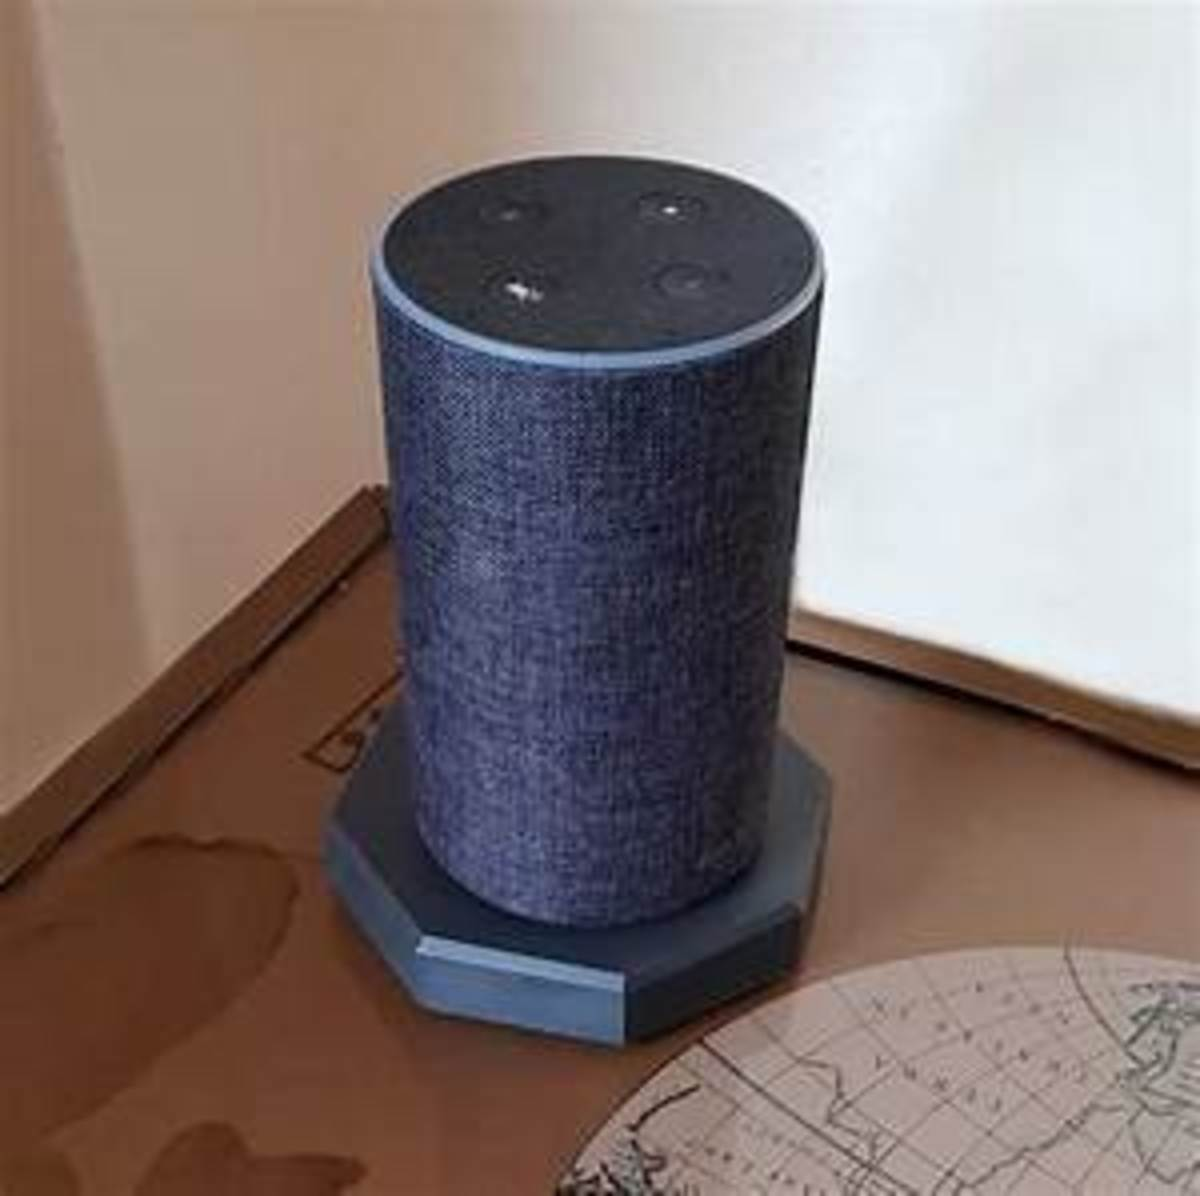 Ask Alexa for some SEO tips